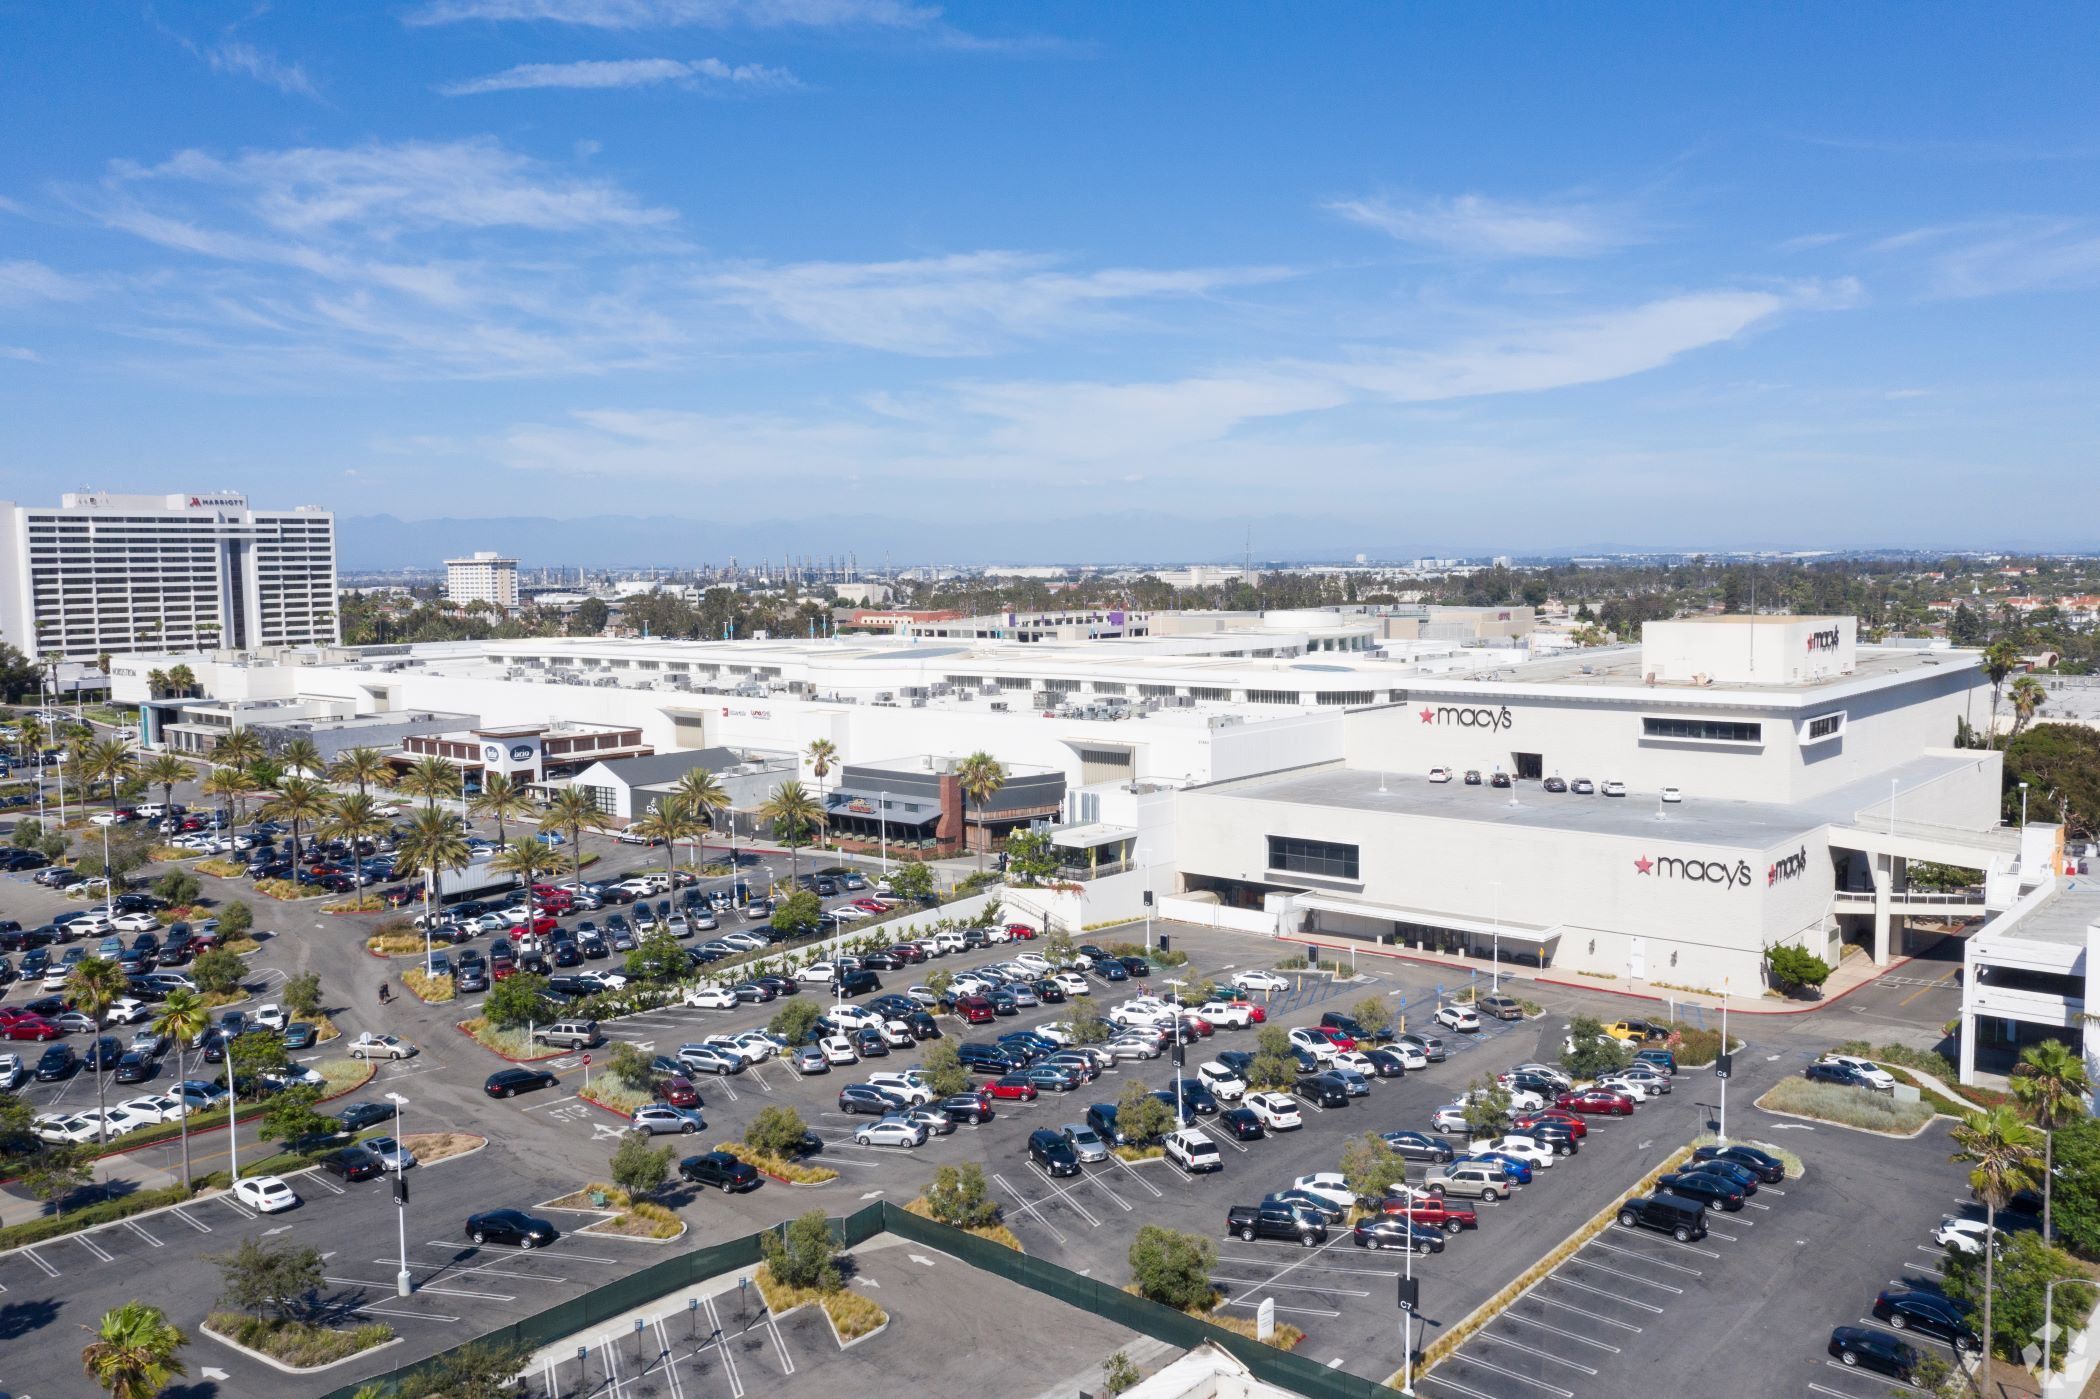 Simon Property Group owns 204 shopping centers and malls across the United States, including Del Amo Fashion Center in Torrance, California. (CoStar)